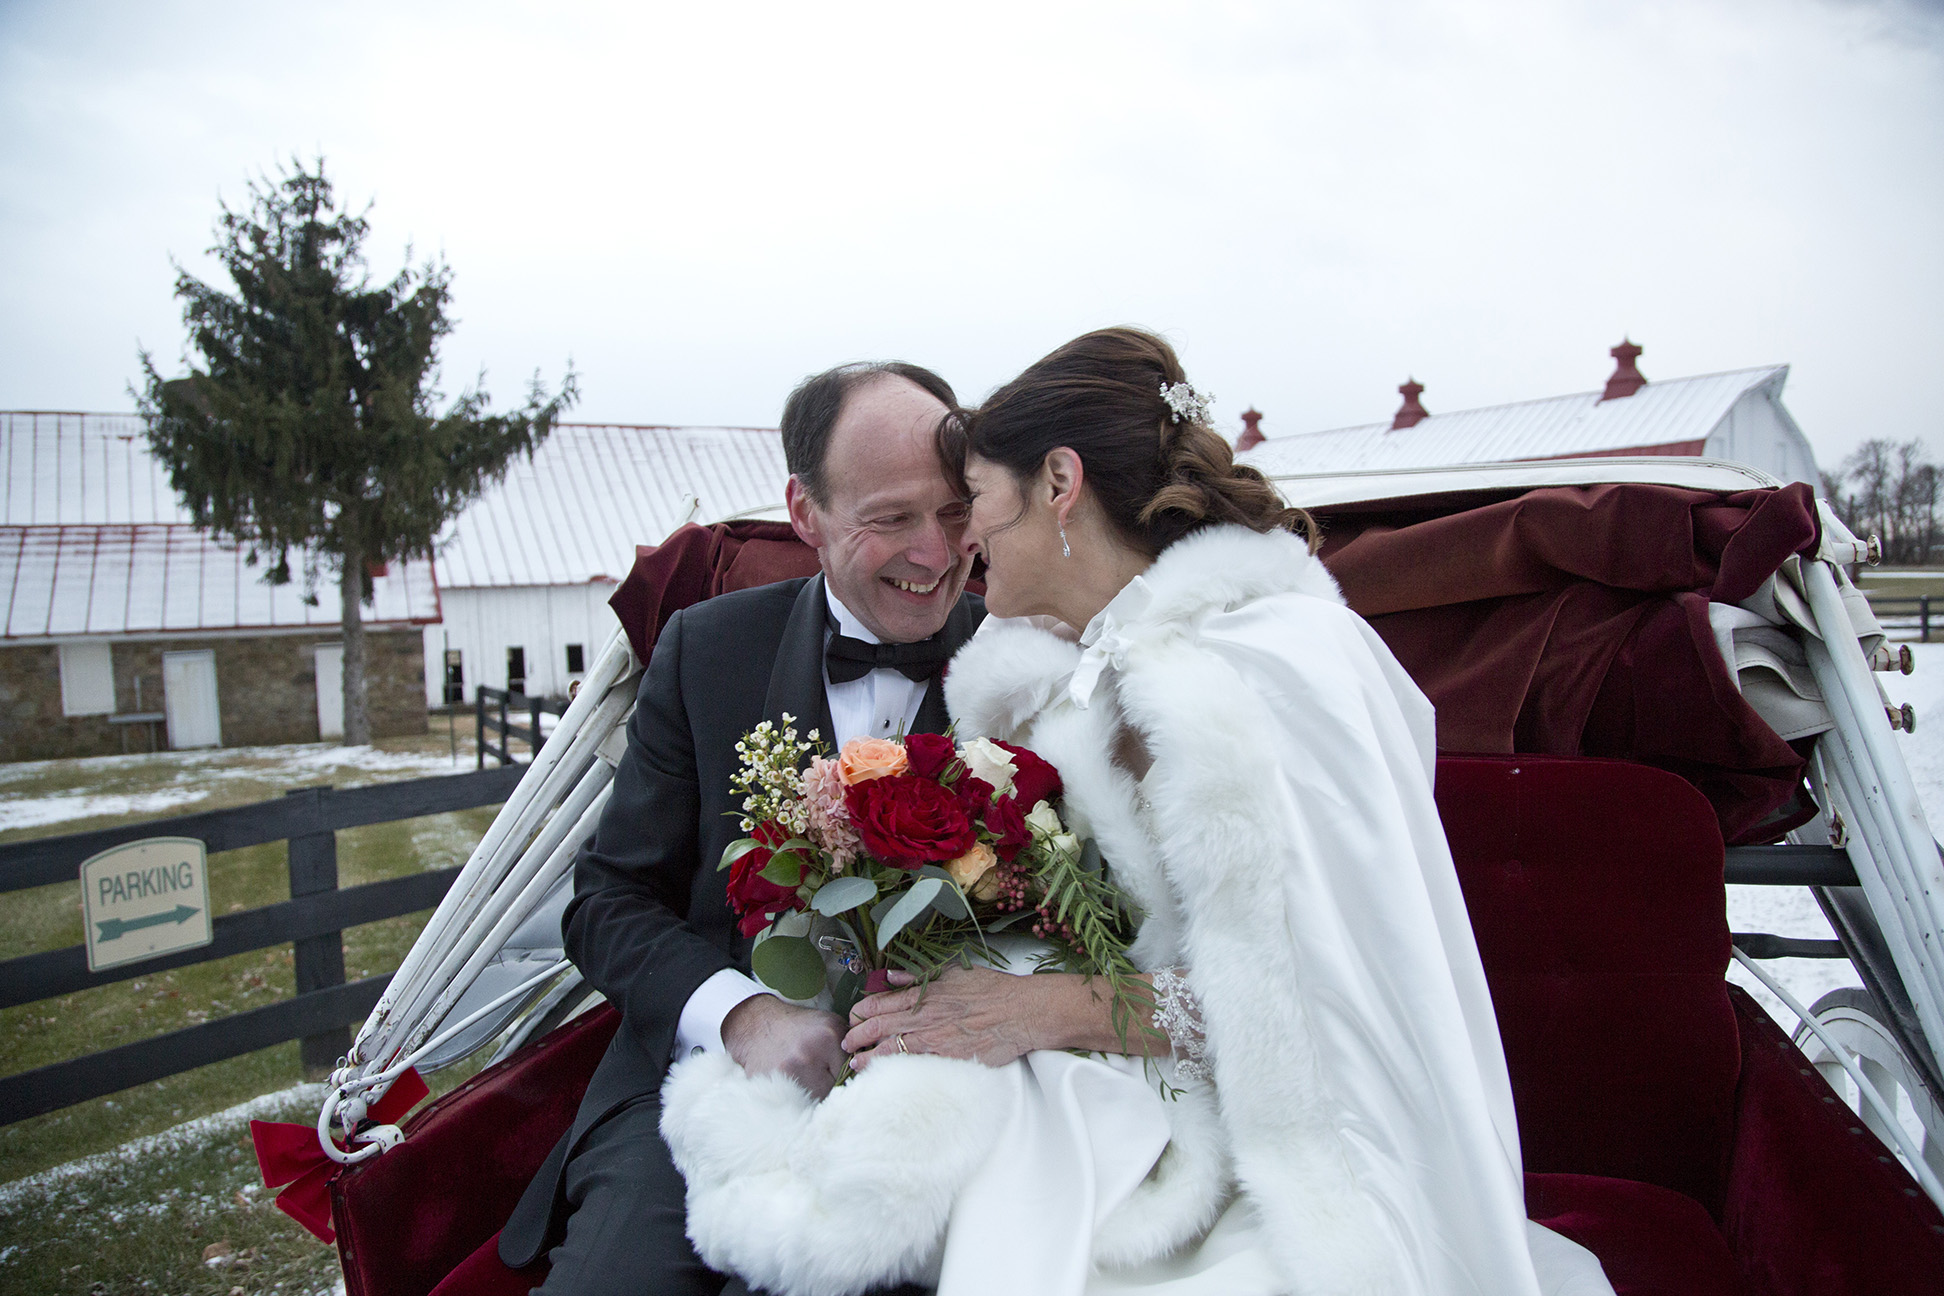 bride and groom snuggling on carriage with barns in the background